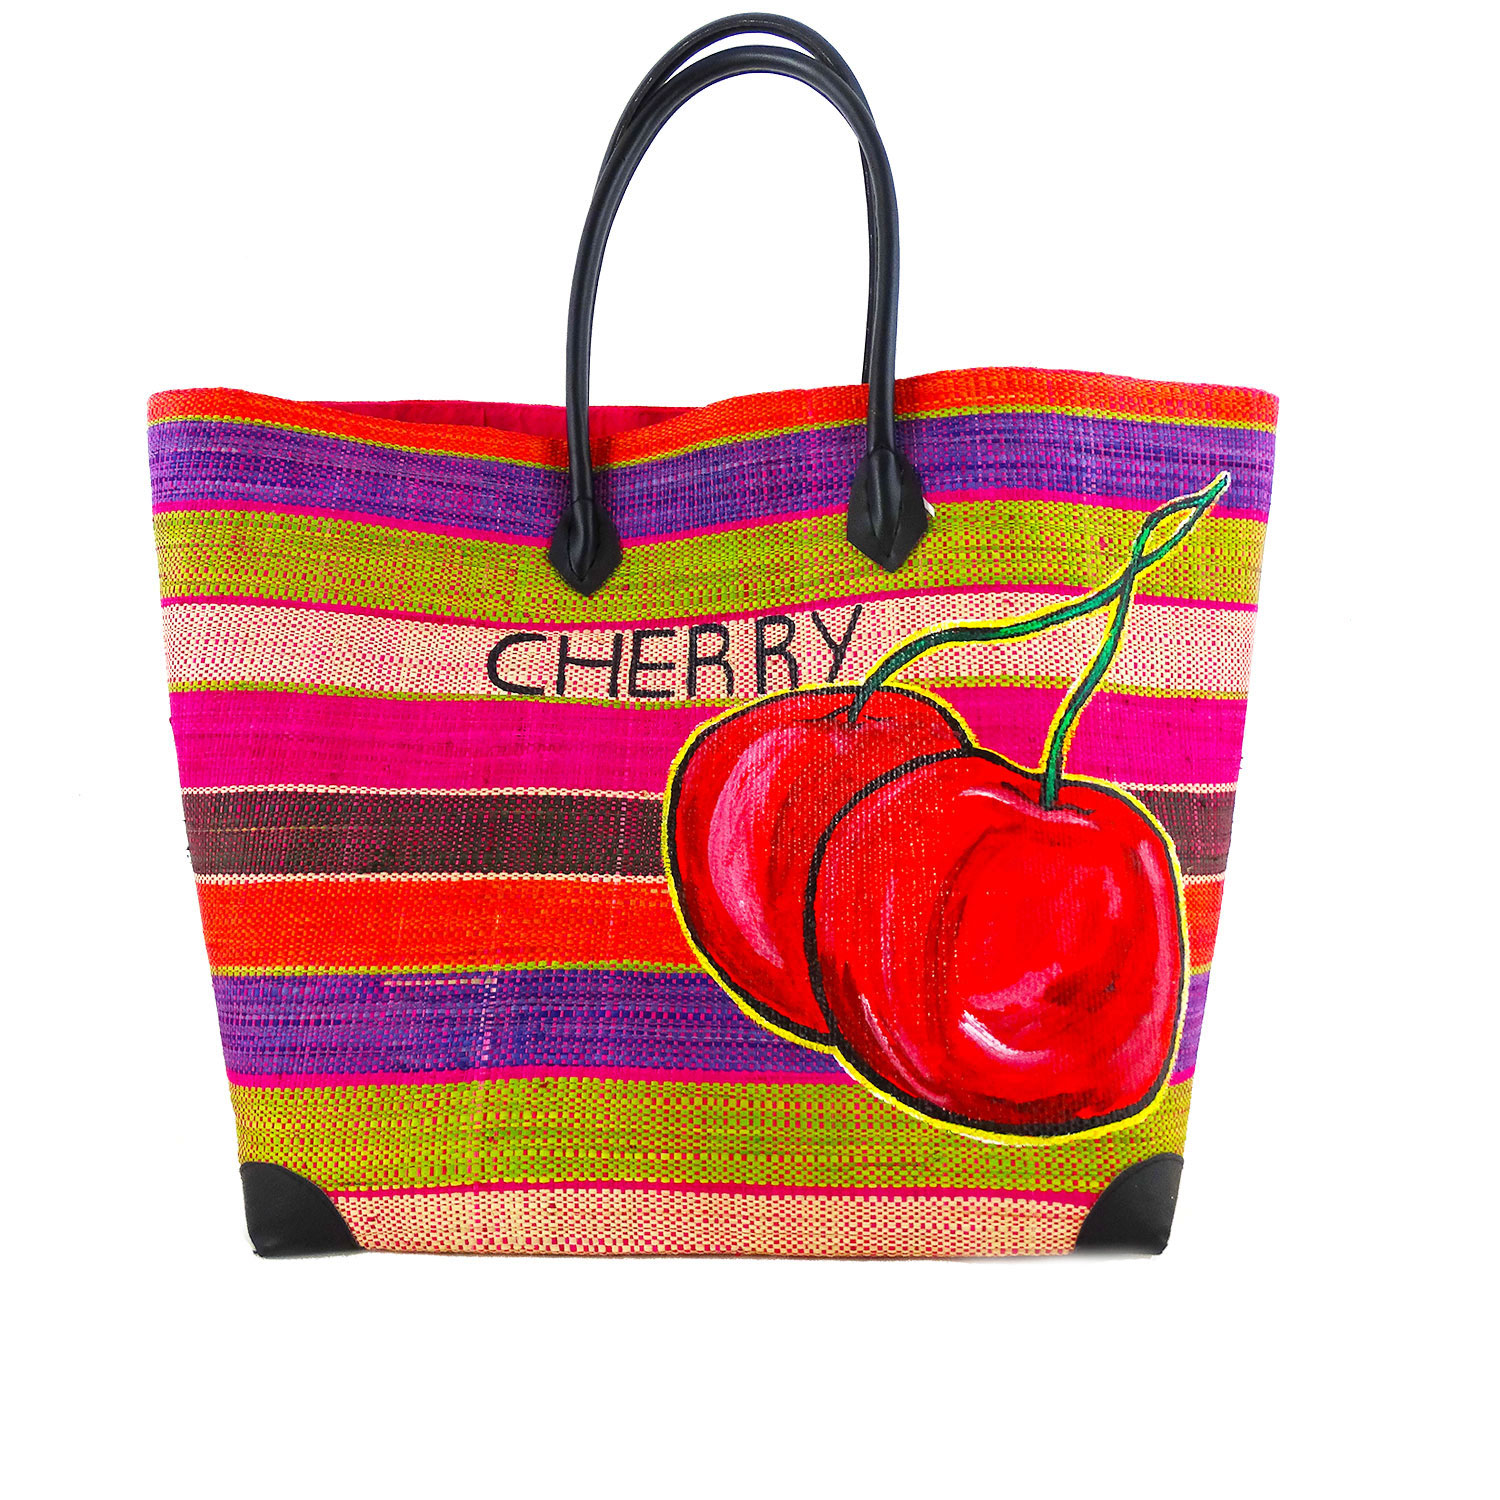 Handpainted bag - Cherry